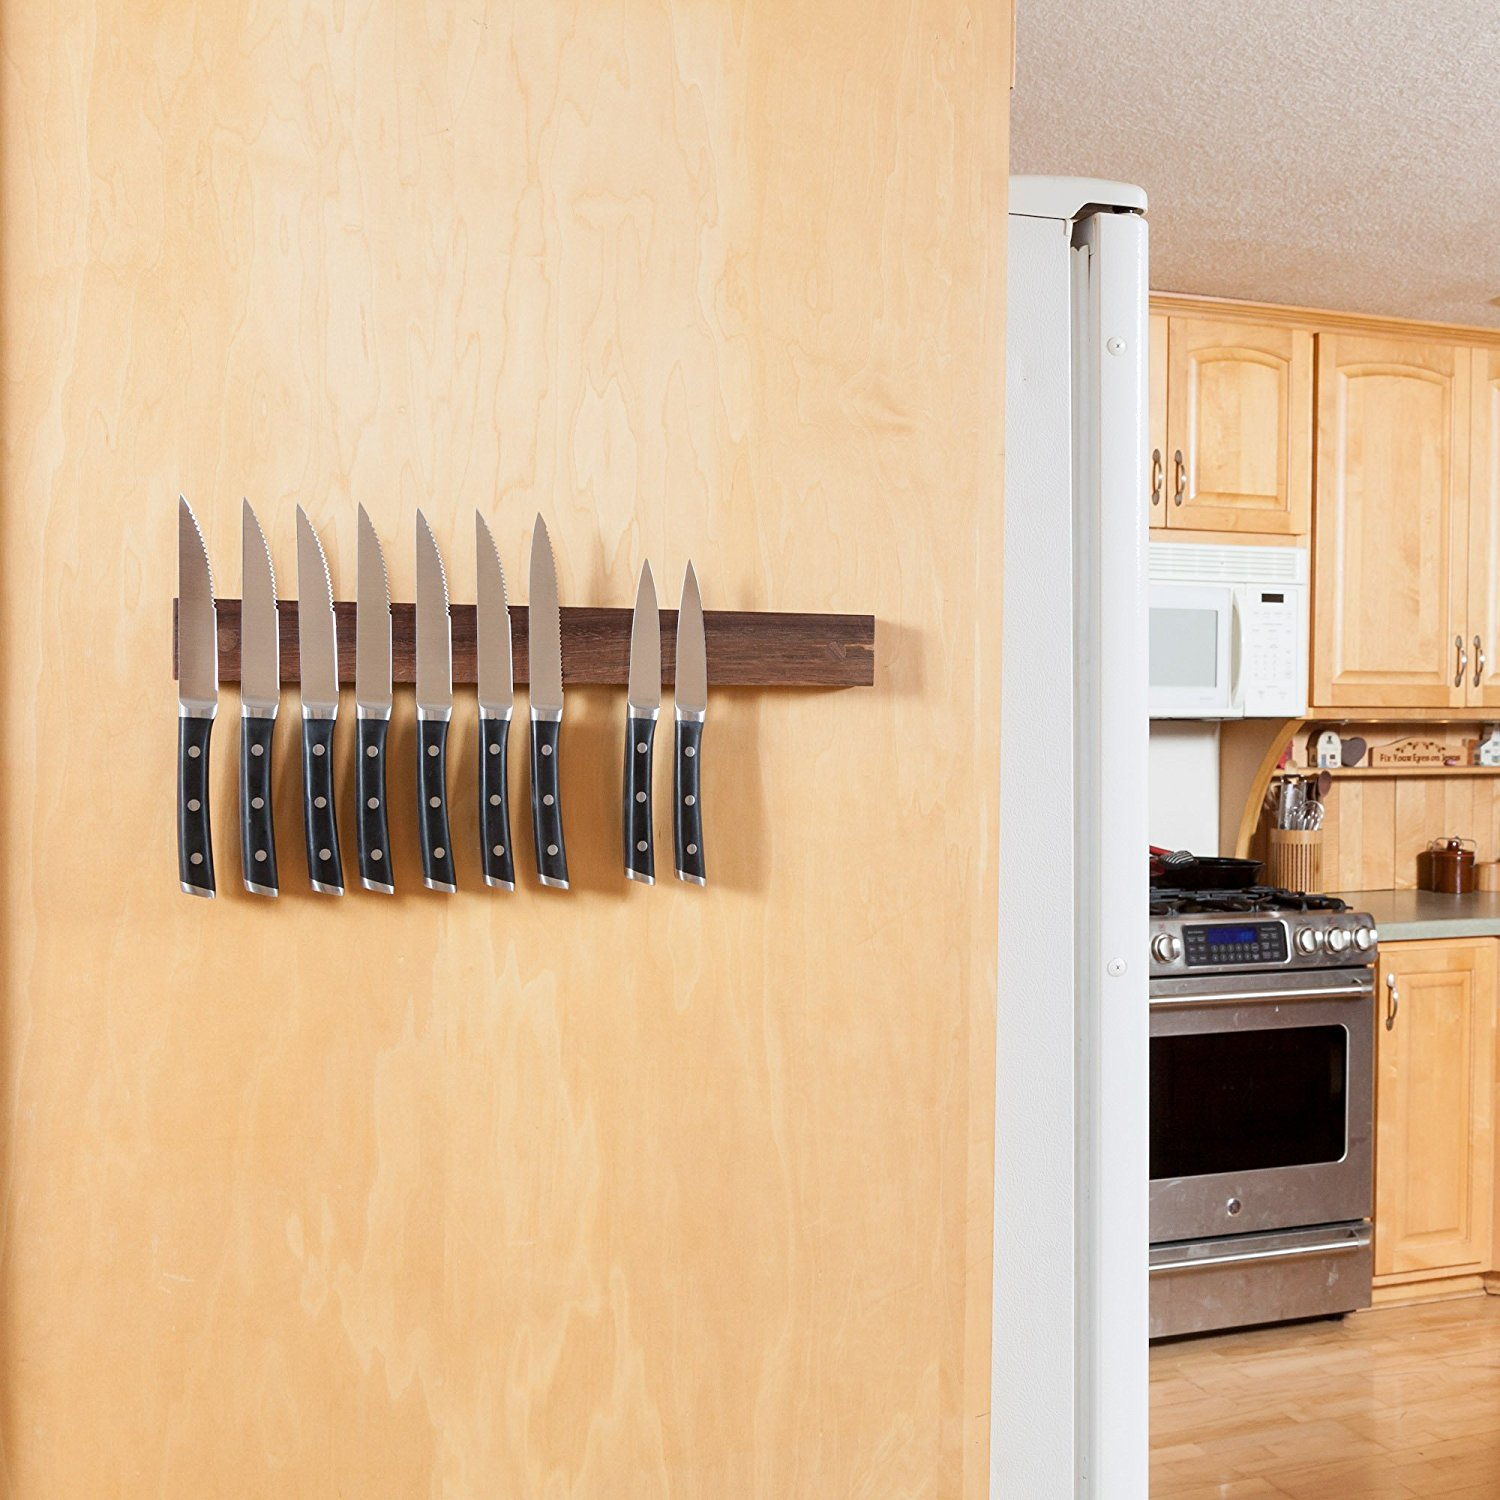 Magnetic Knife Strip Holder Walnut Wall Mount Wooden Knife Rack